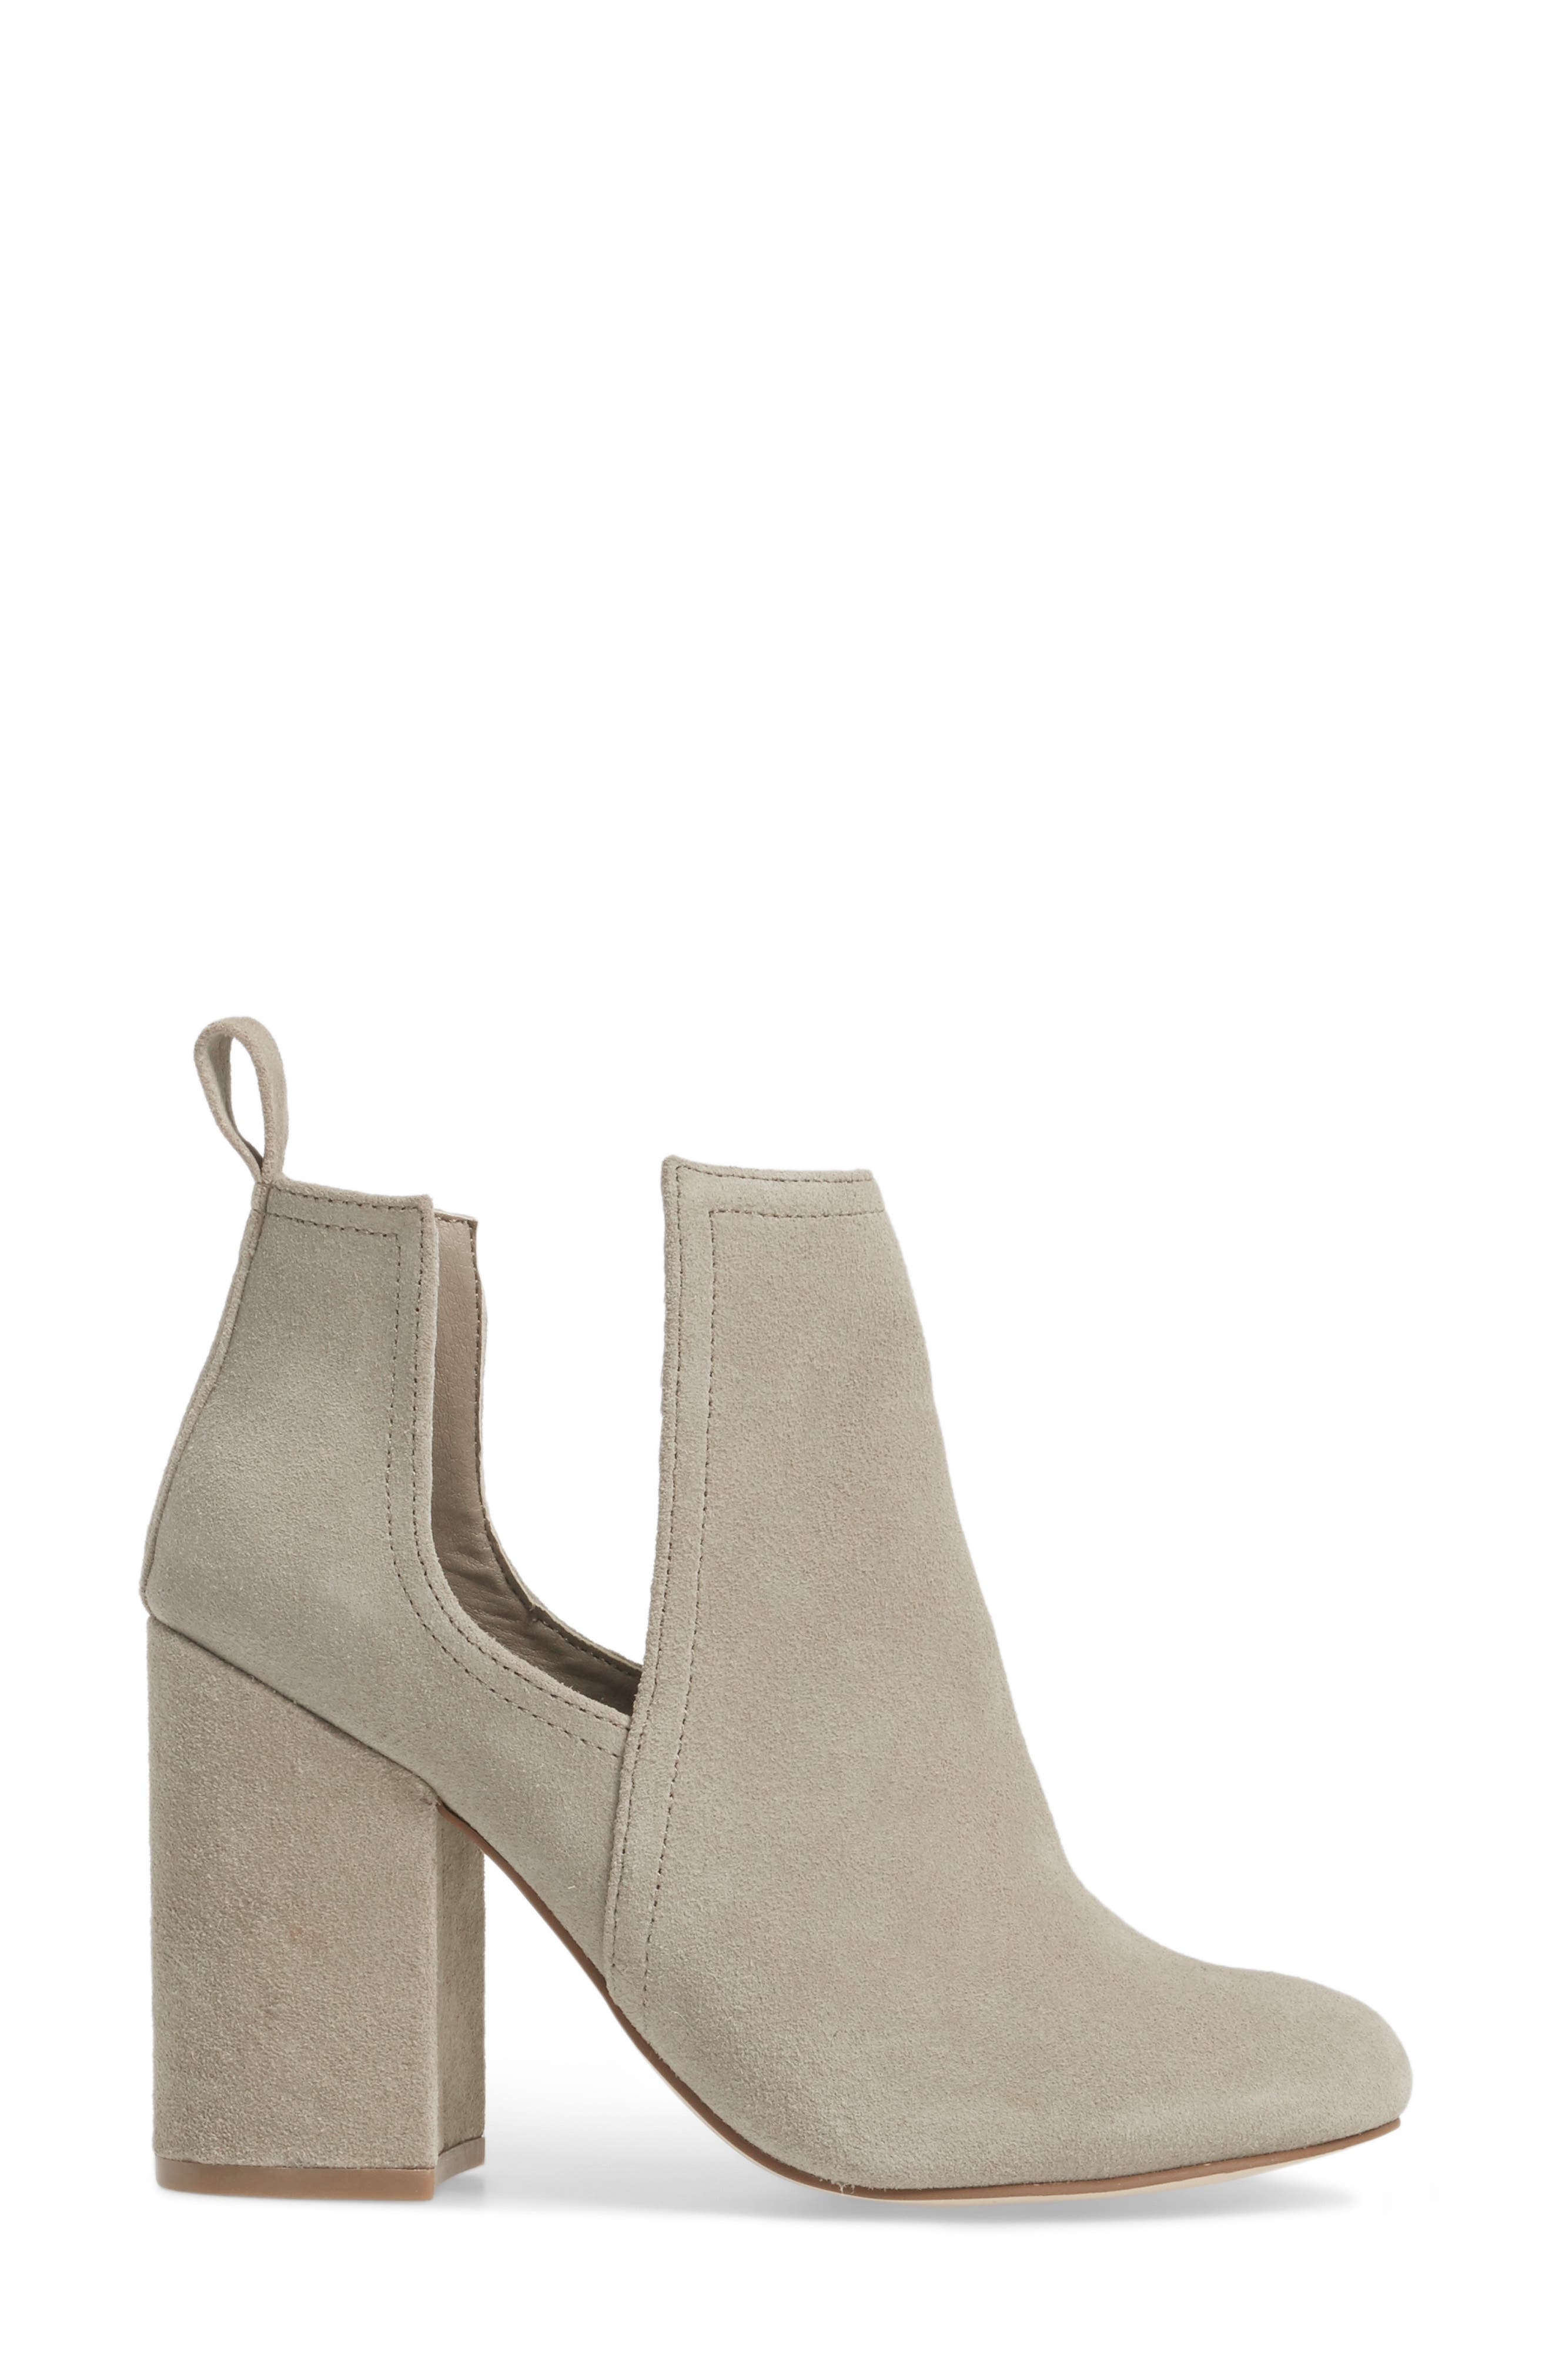 Naomi Cutout Bootie,                             Alternate thumbnail 3, color,                             Taupe Suede